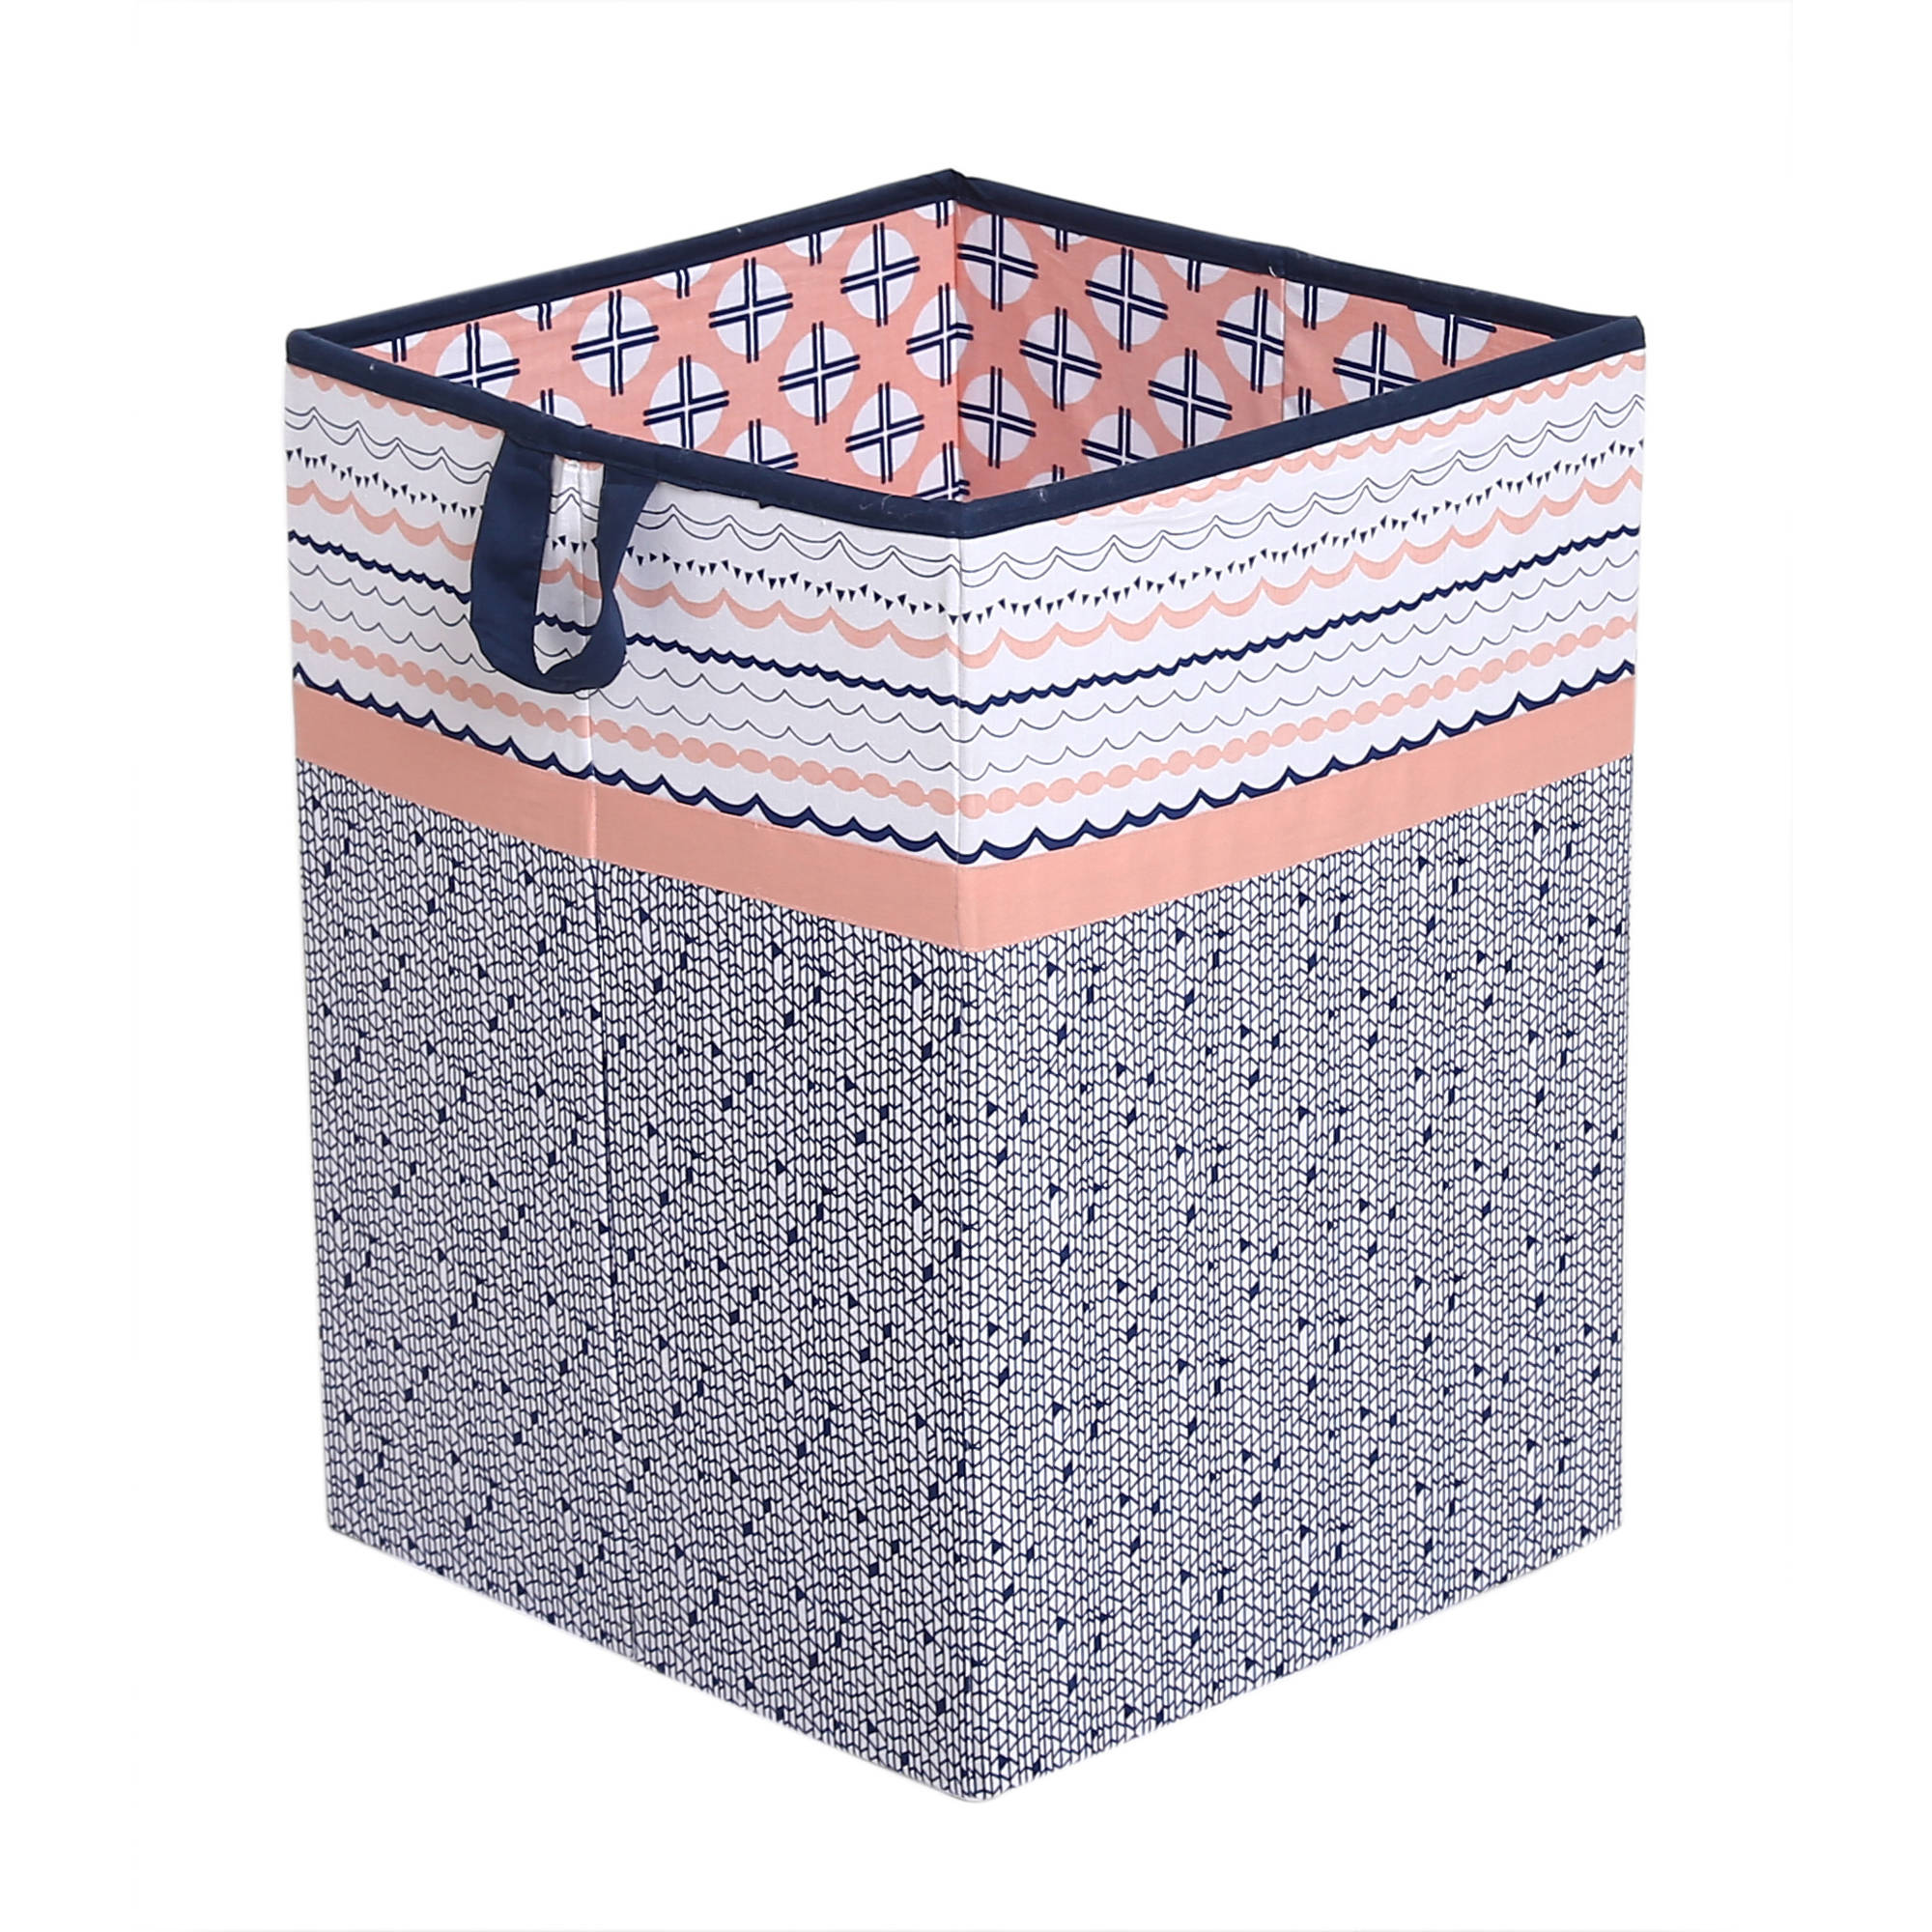 Bacati - Tribal Noah Mint/Navy Cotton Percale Fabric covered Storage,Collapsible Hamper, 18 H x 13 W x 13 L inches